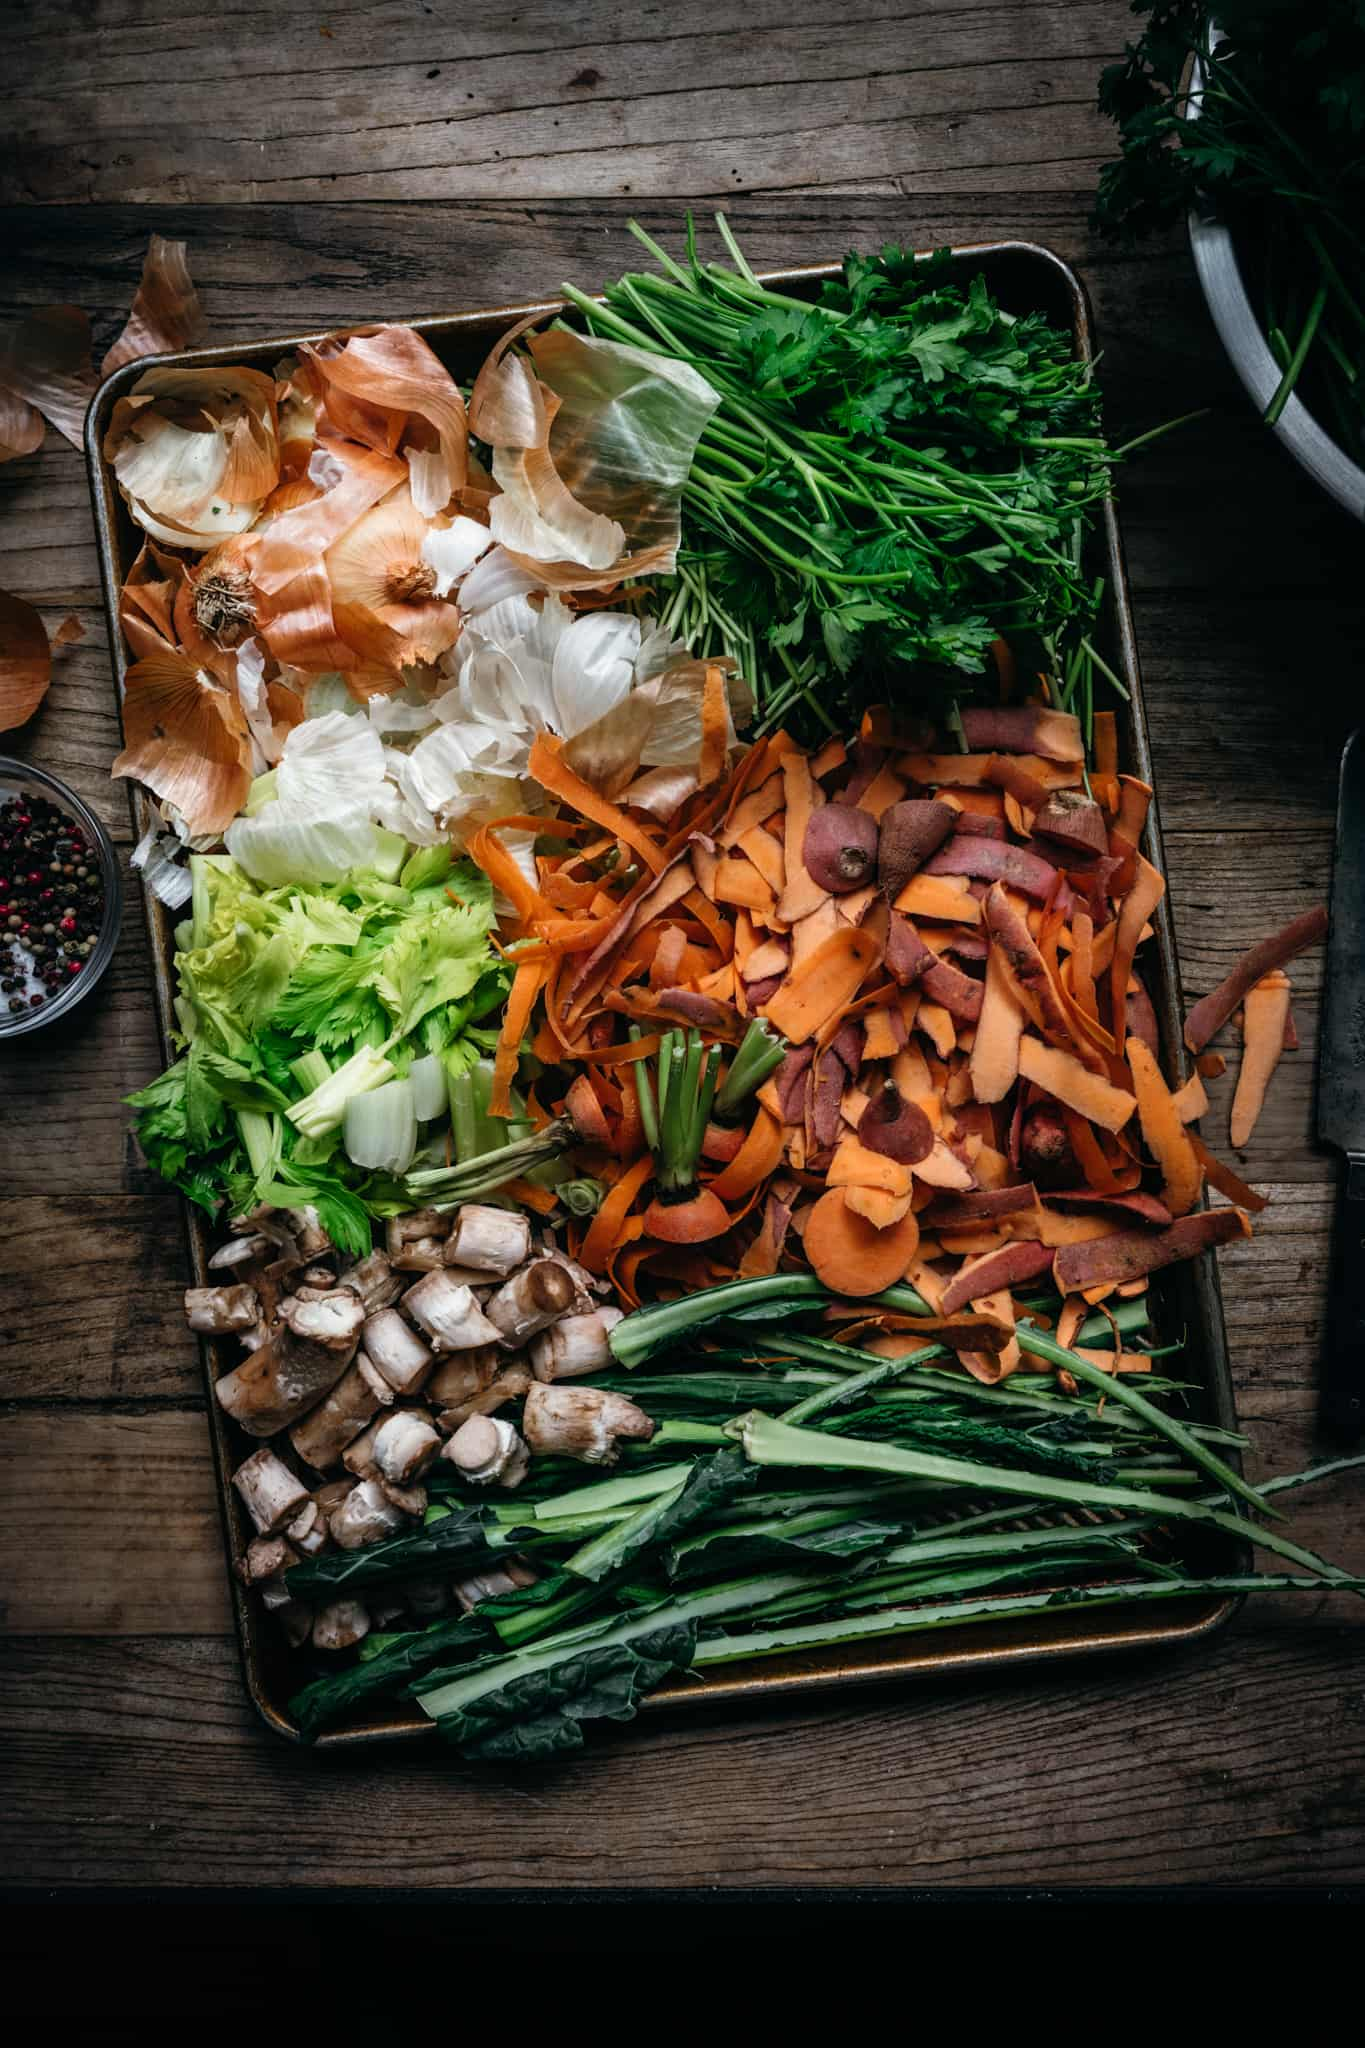 overhead view of vegetable scraps on sheet pan to make vegetable broth